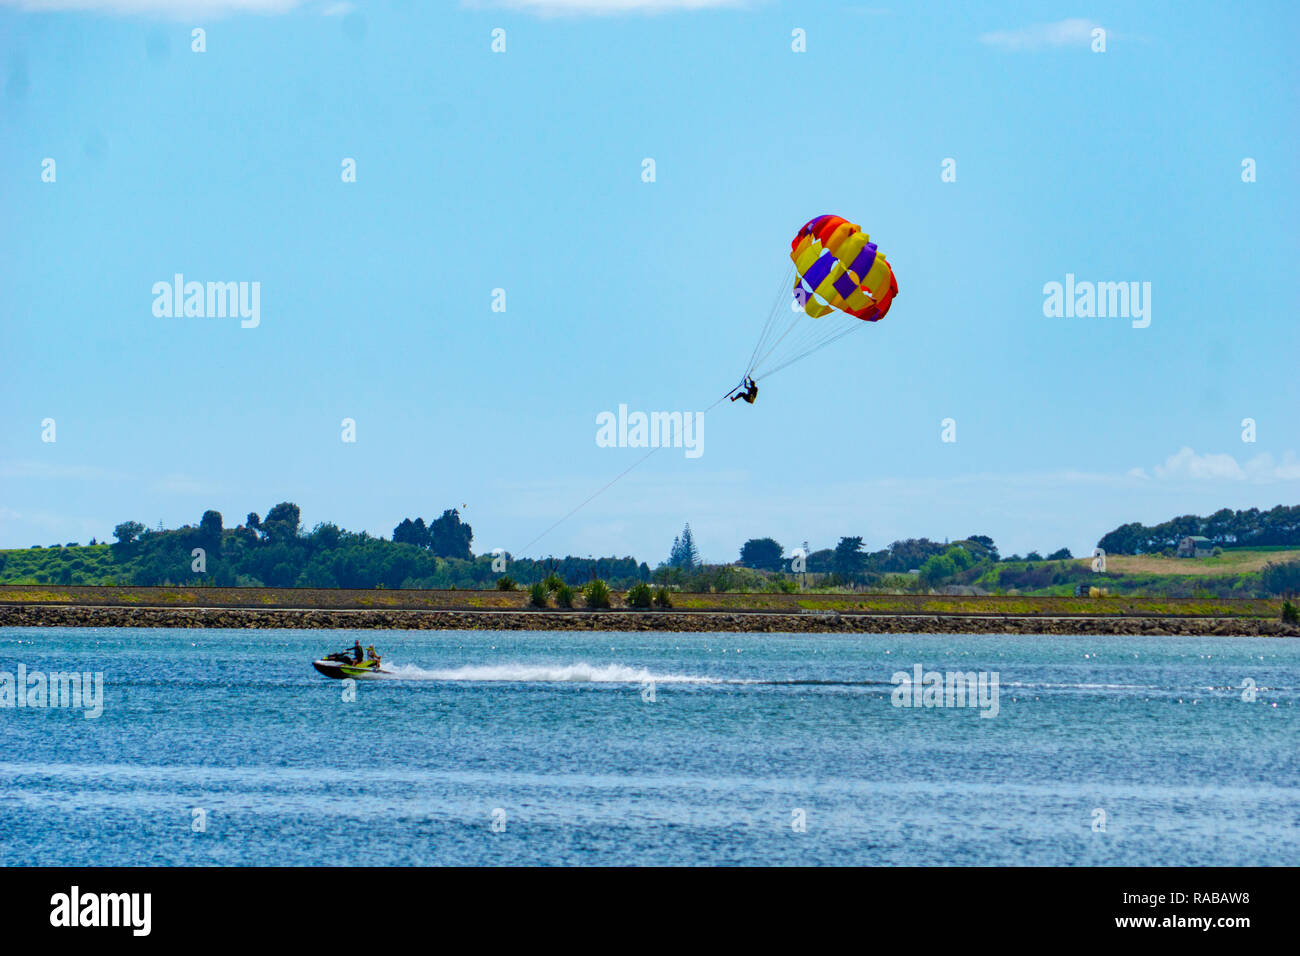 TAURANGA, NEW ZEALAND DECEMBER 22 2018; Summer fun being towed over the bay while hanging under a paraglider. - Stock Image